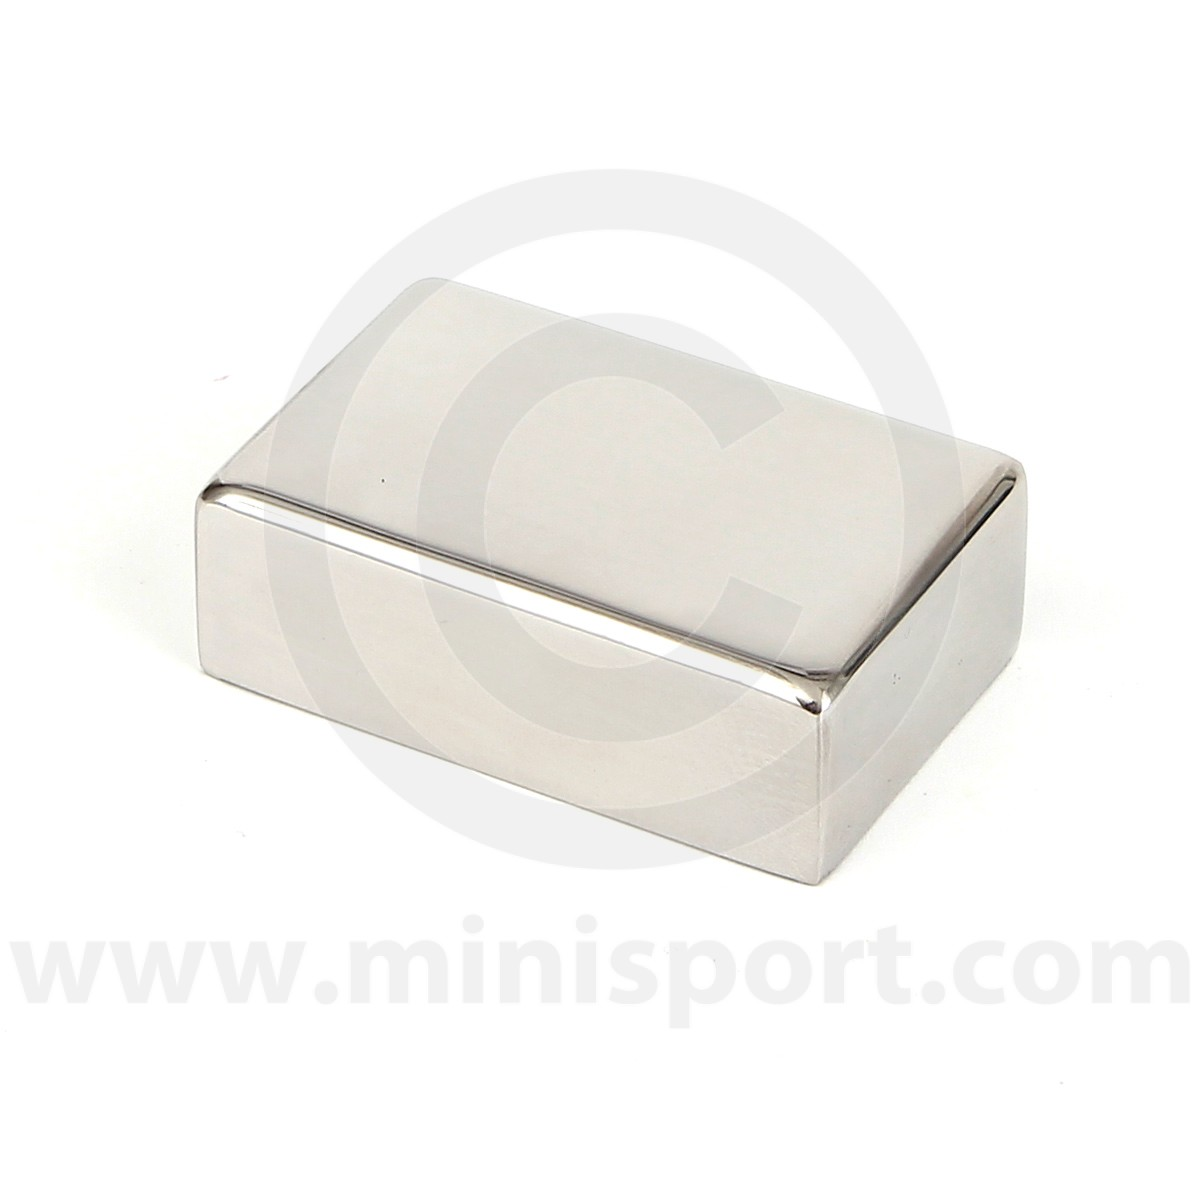 Smb60 Mini Fuse Box Cover Electrical Sport Covers More Views